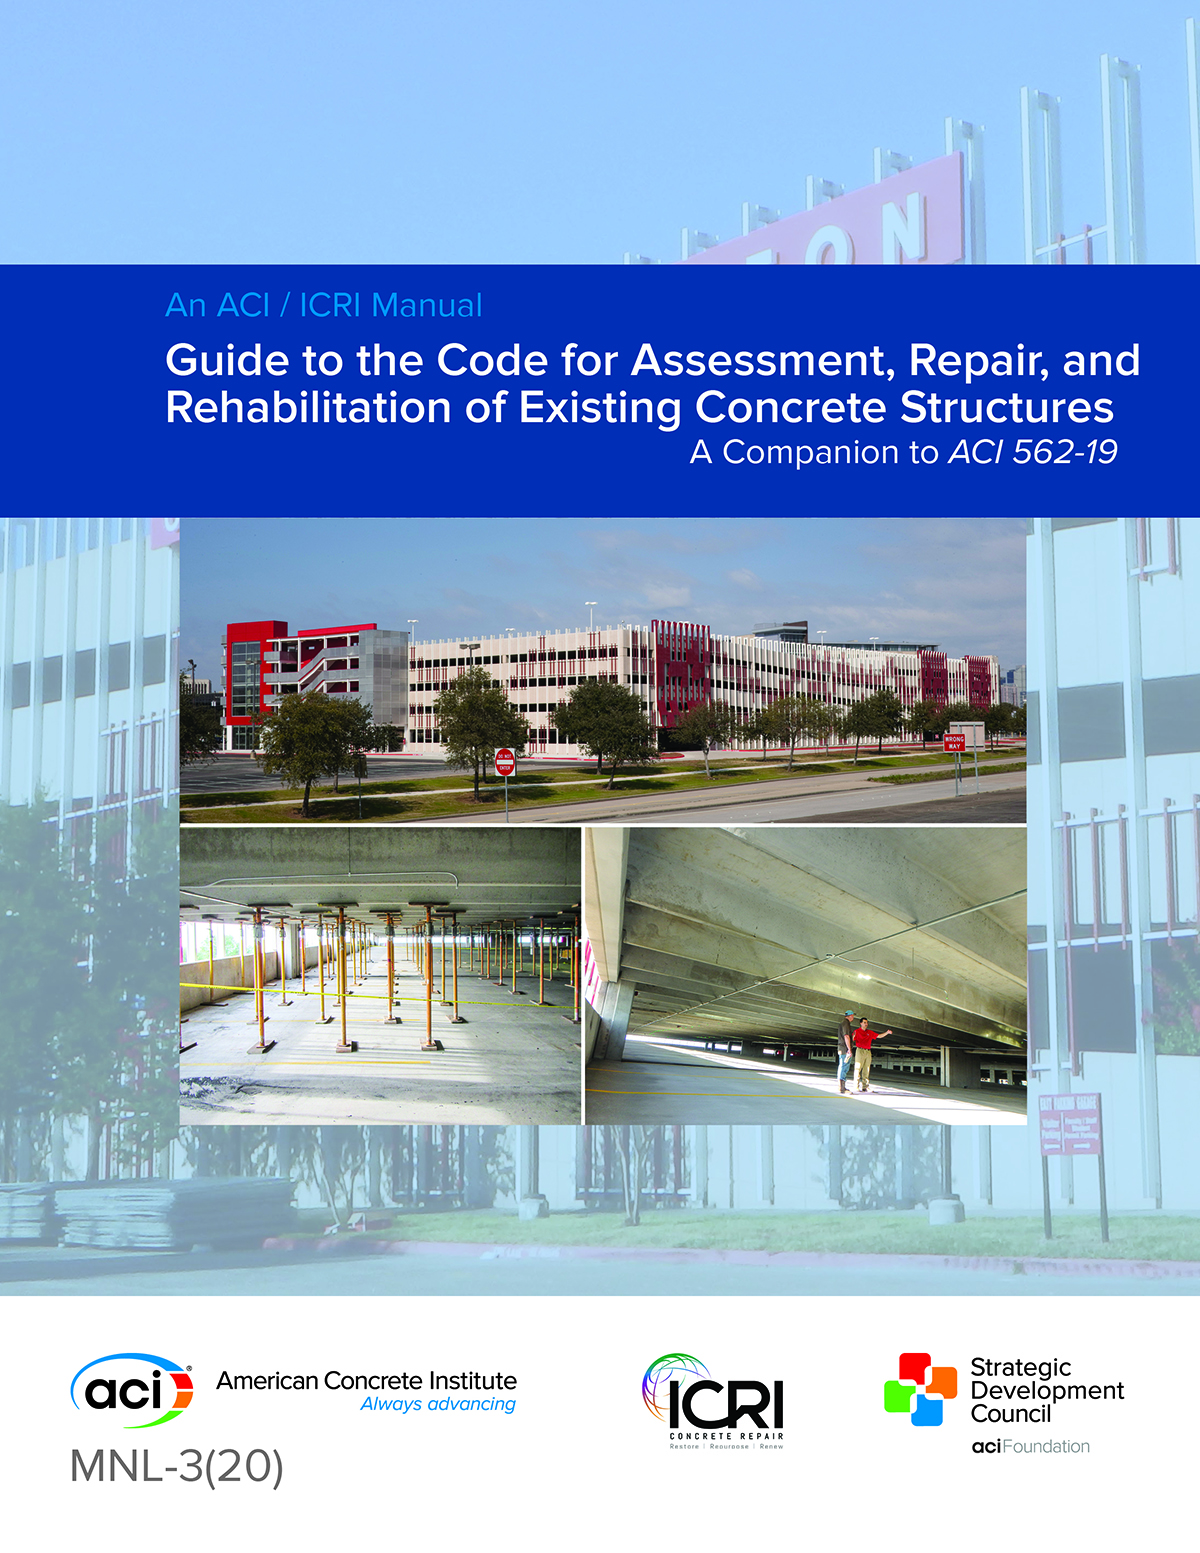 ACI and ICRI publish New Guide to the CODE for Assessment, Repair, and Rehabilitation of Existing Concrete Structures